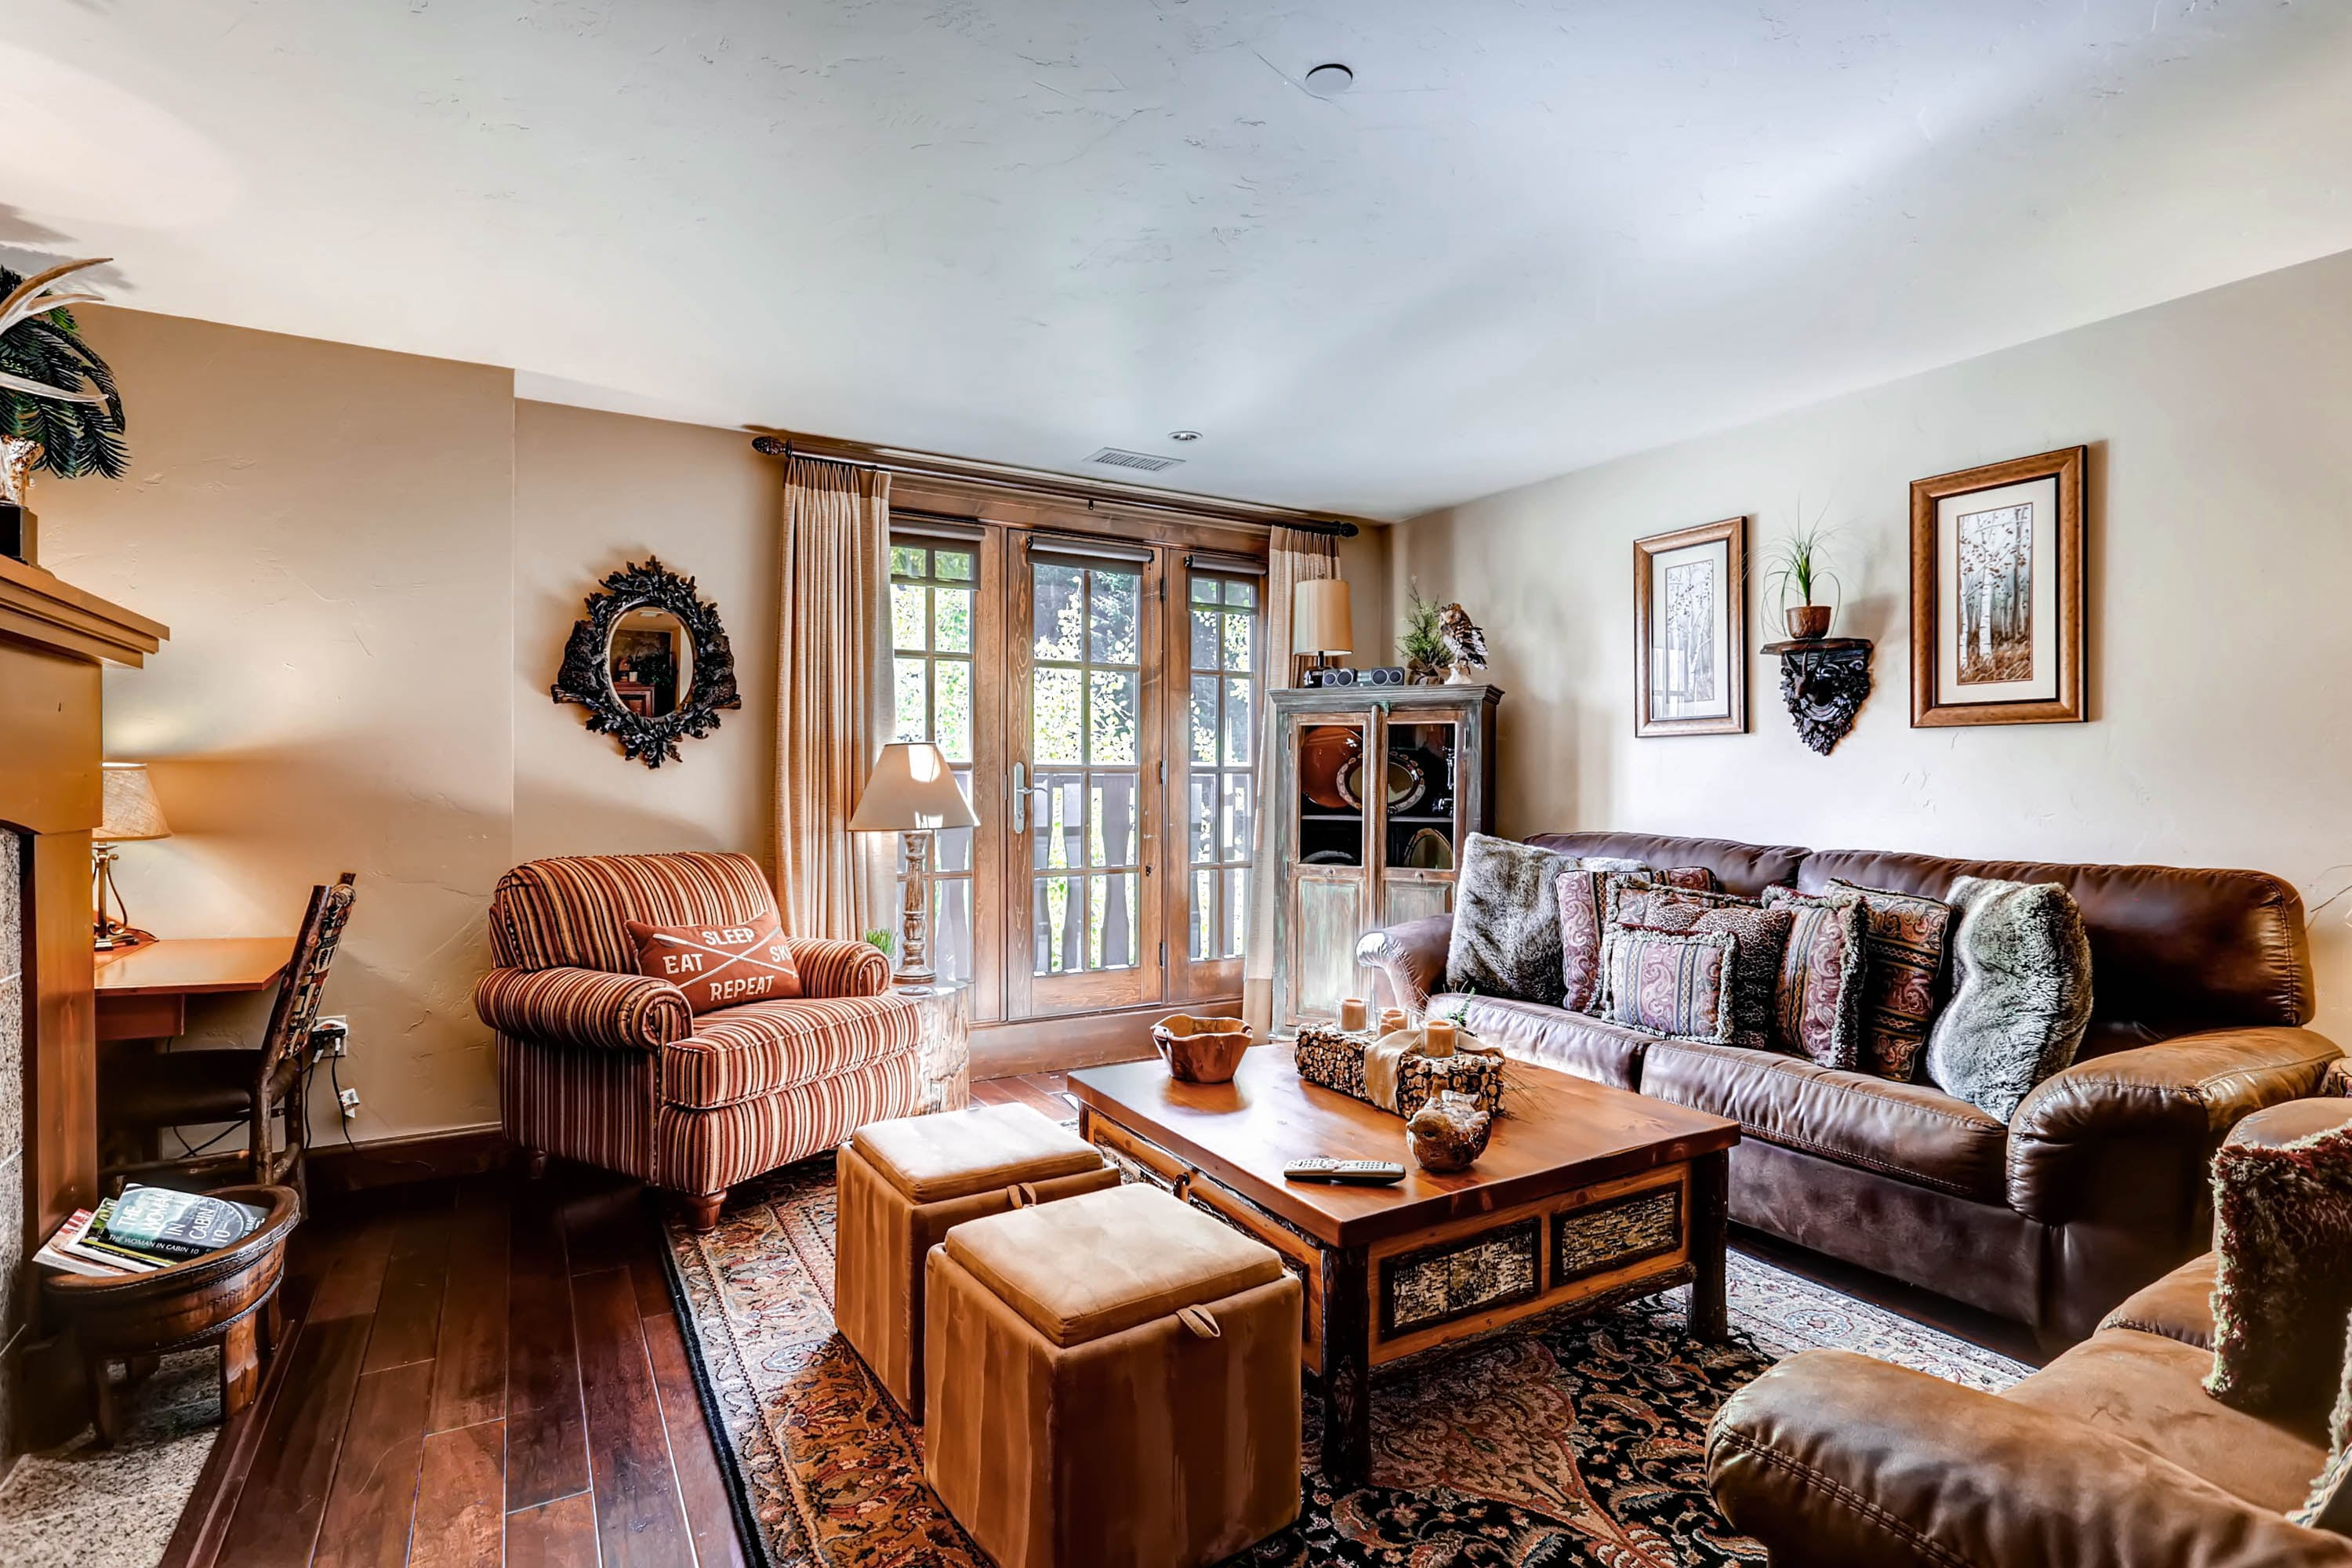 Cozy Condo in Avon with all the Touches of Home